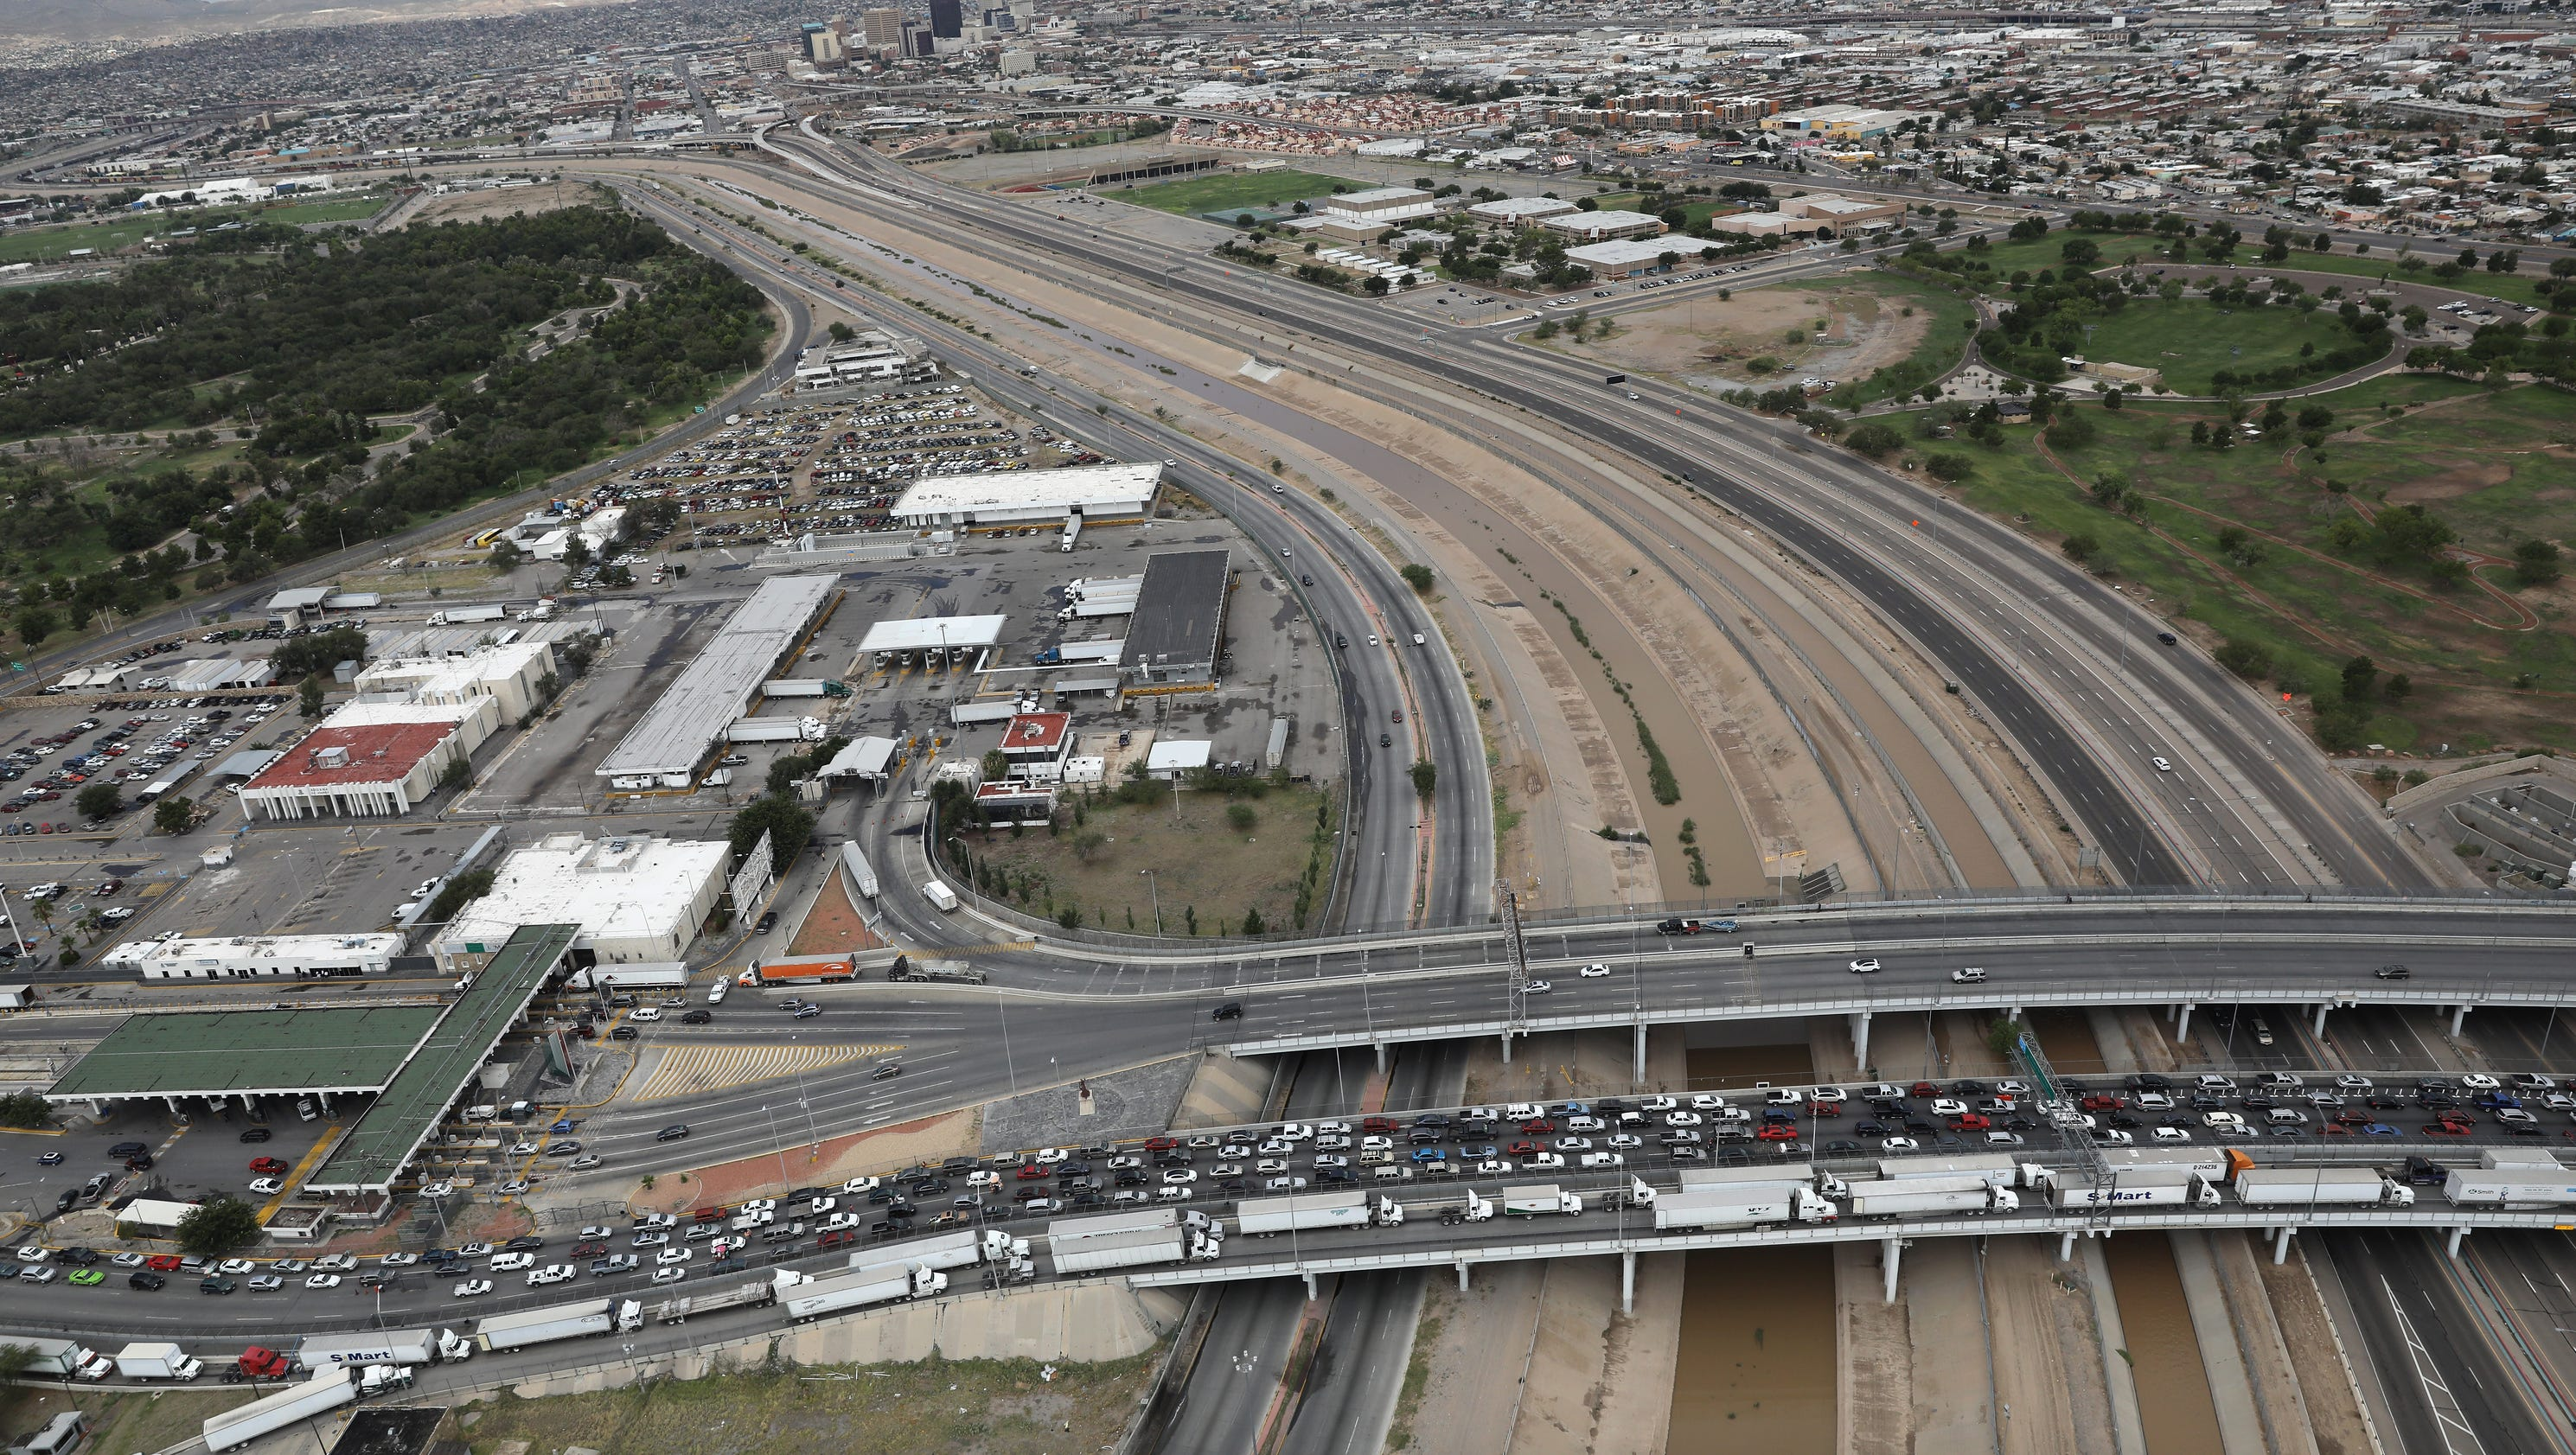 Border Patrol Agent From El Paso Dies From Injuries While